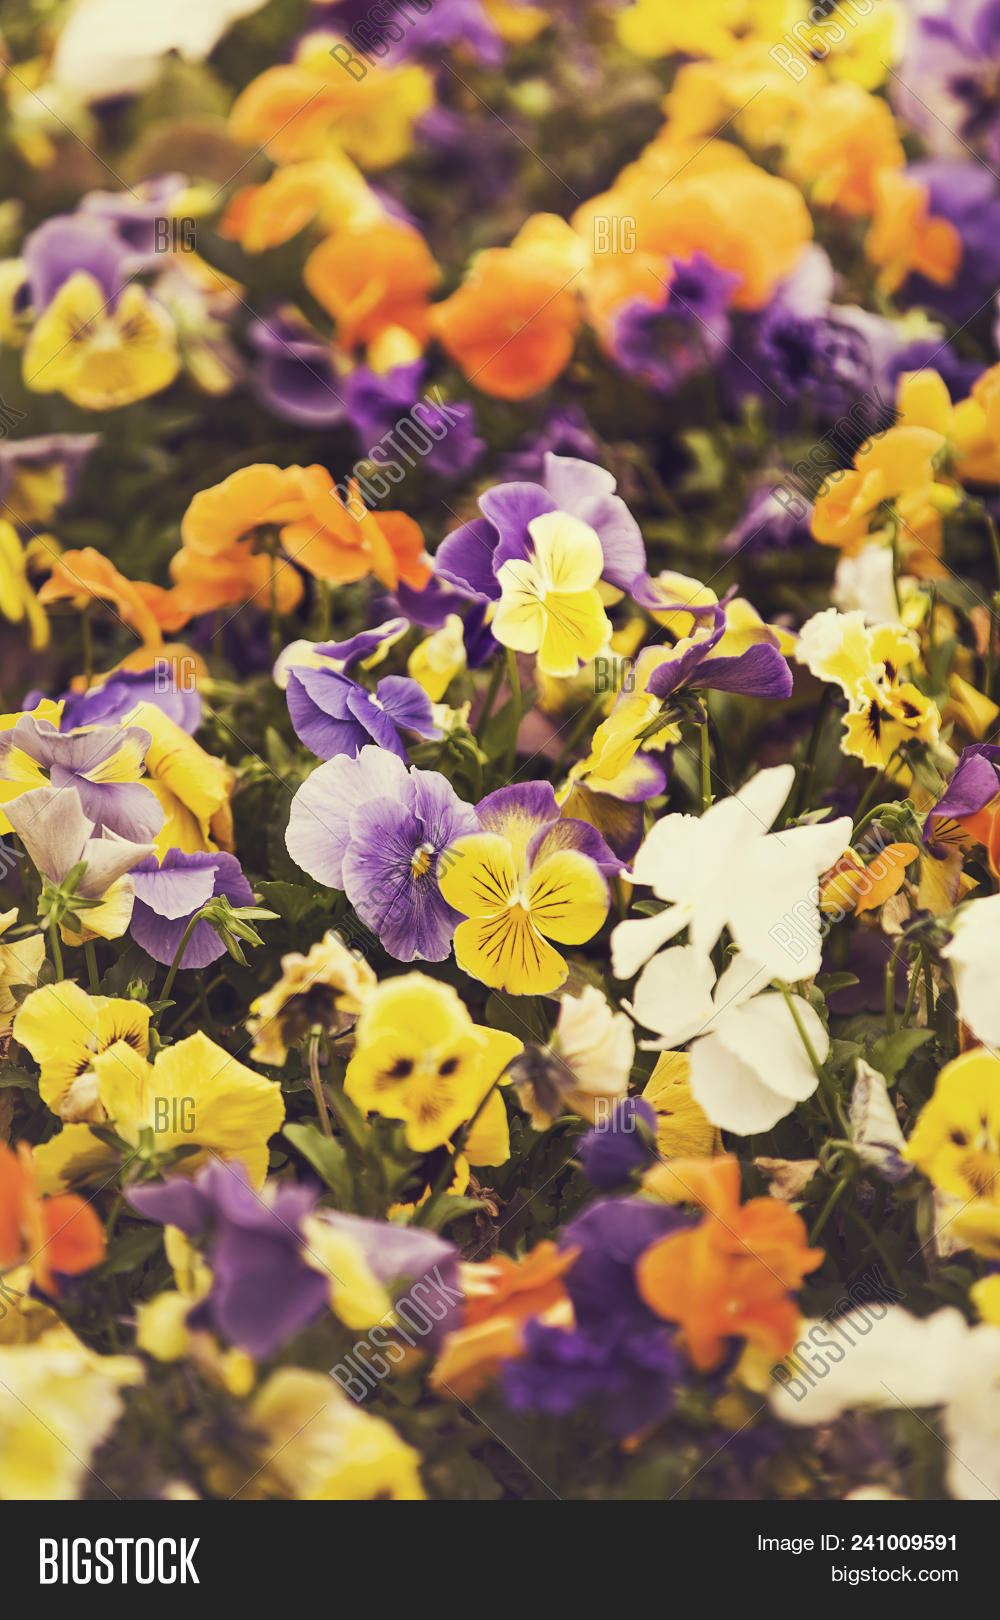 Multicolor Pansy Image Photo Free Trial Bigstock